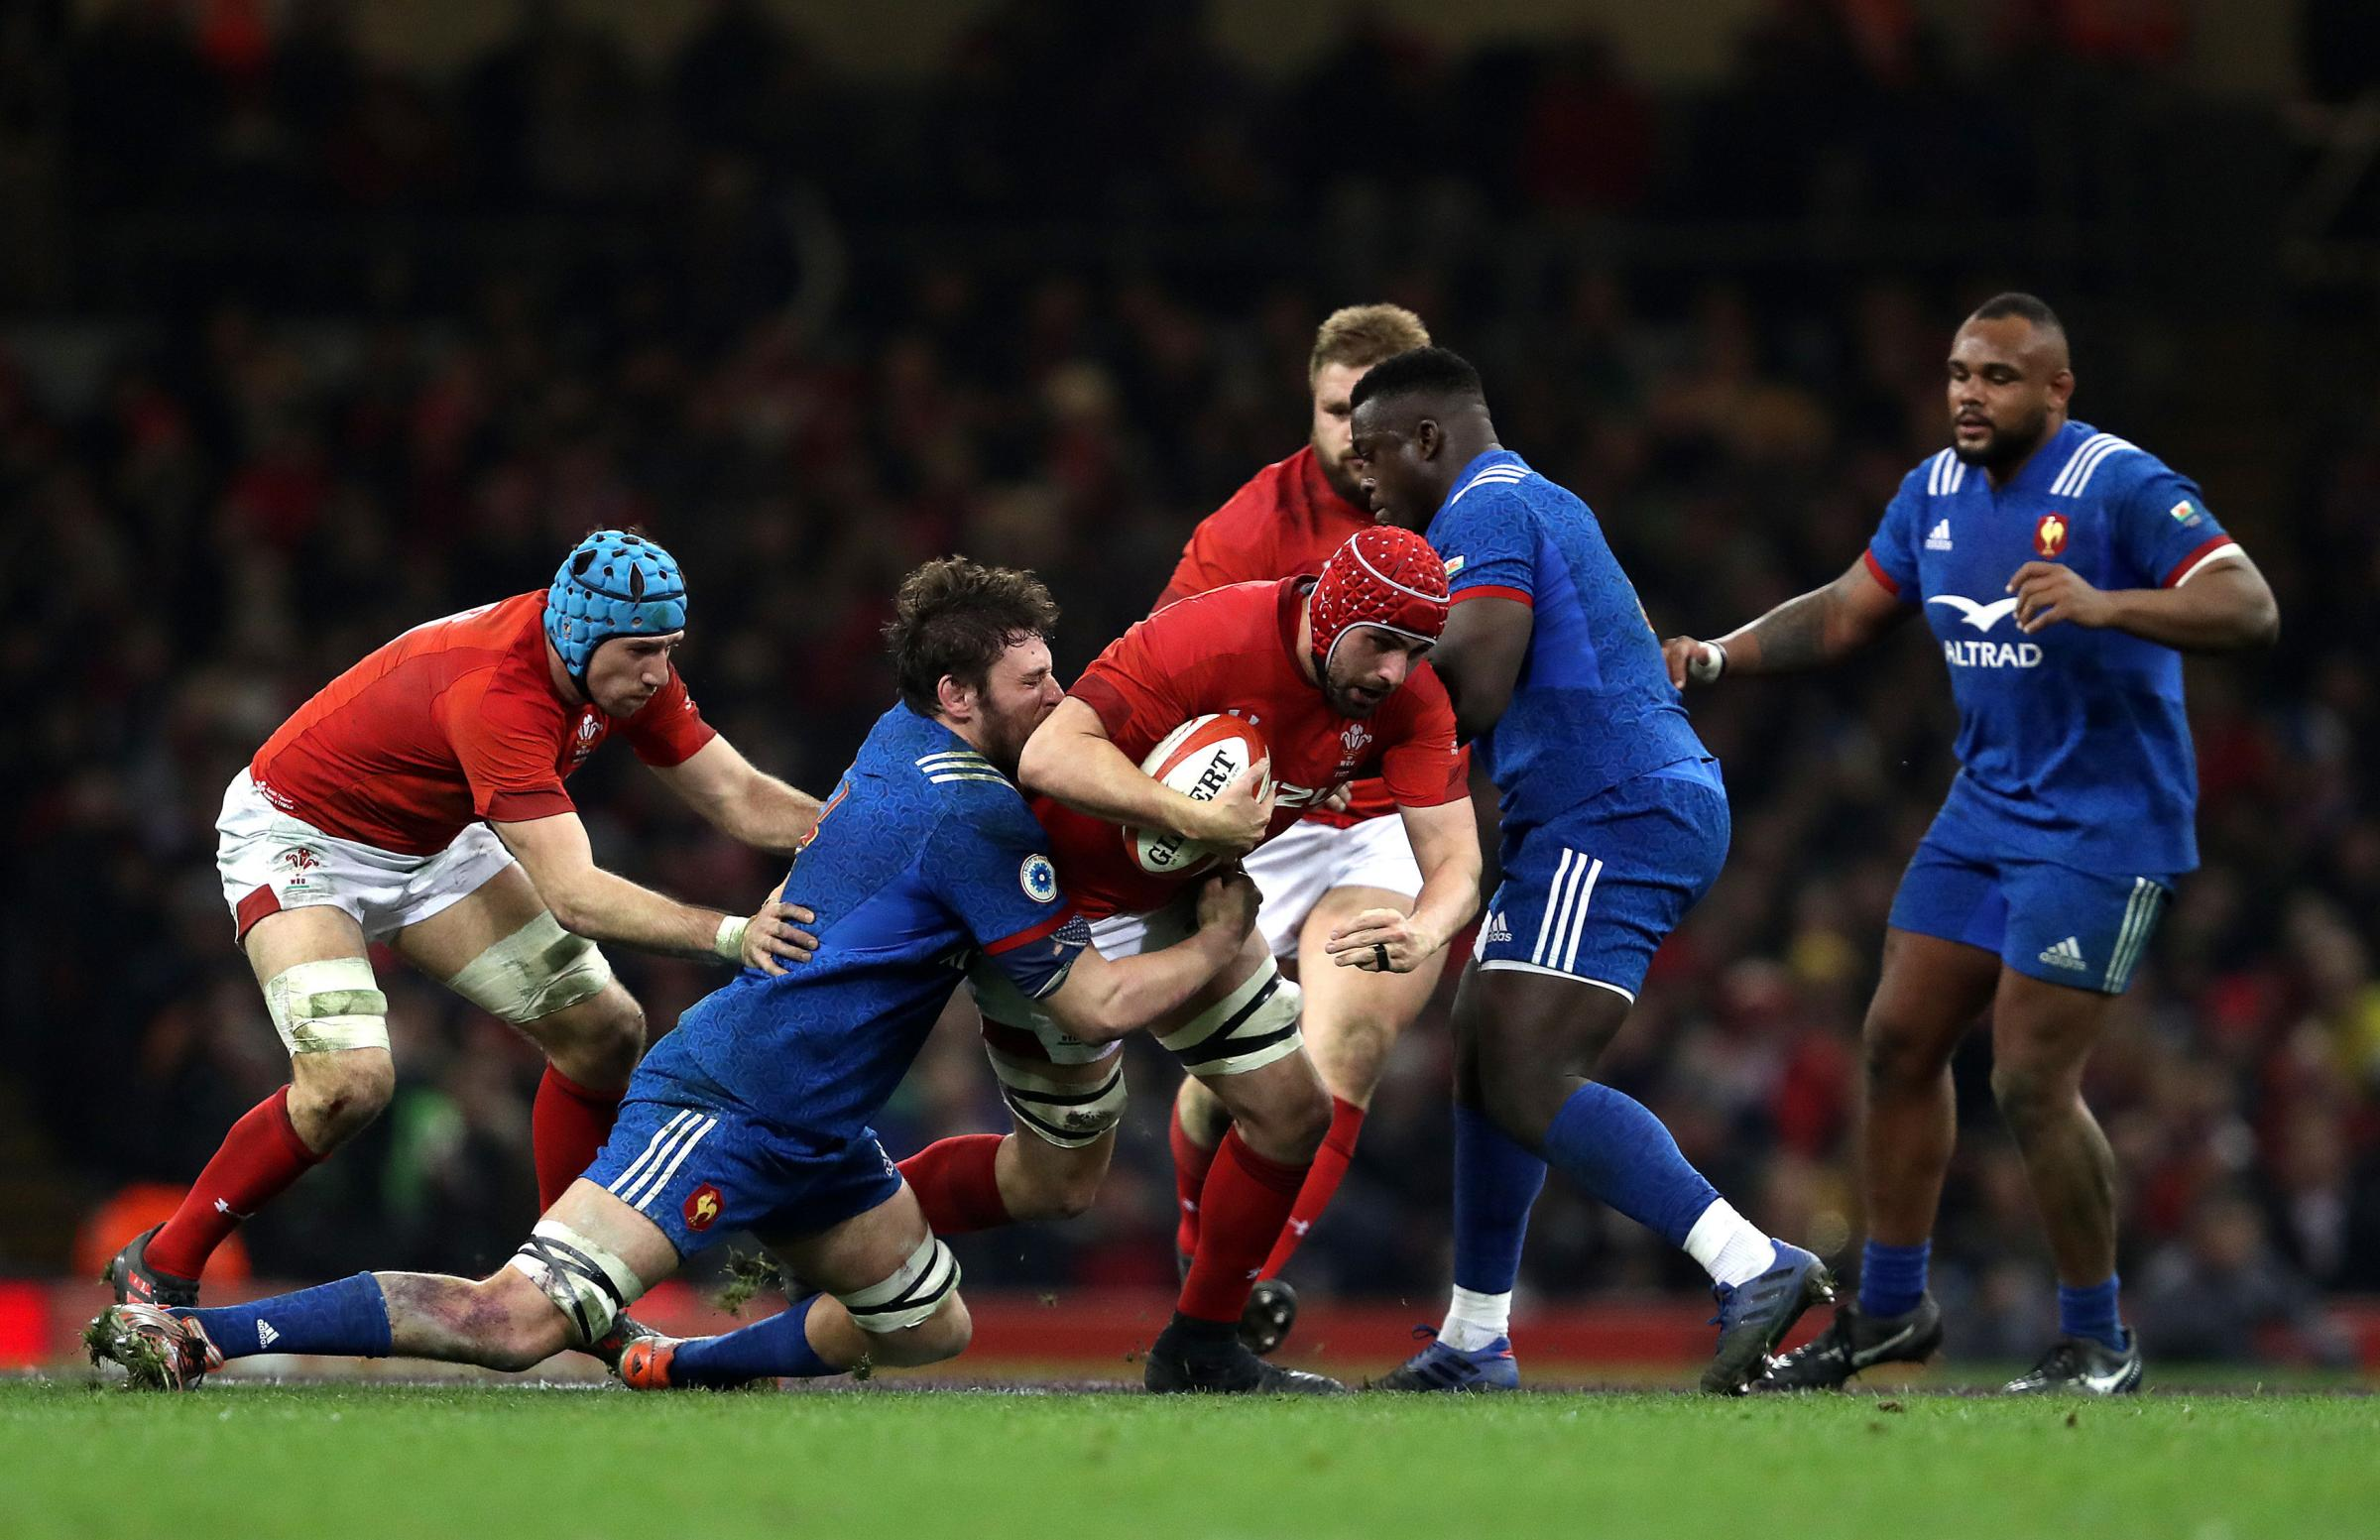 ON THE CHARGE: Dragons lock Cory Hill carries hard for Wales